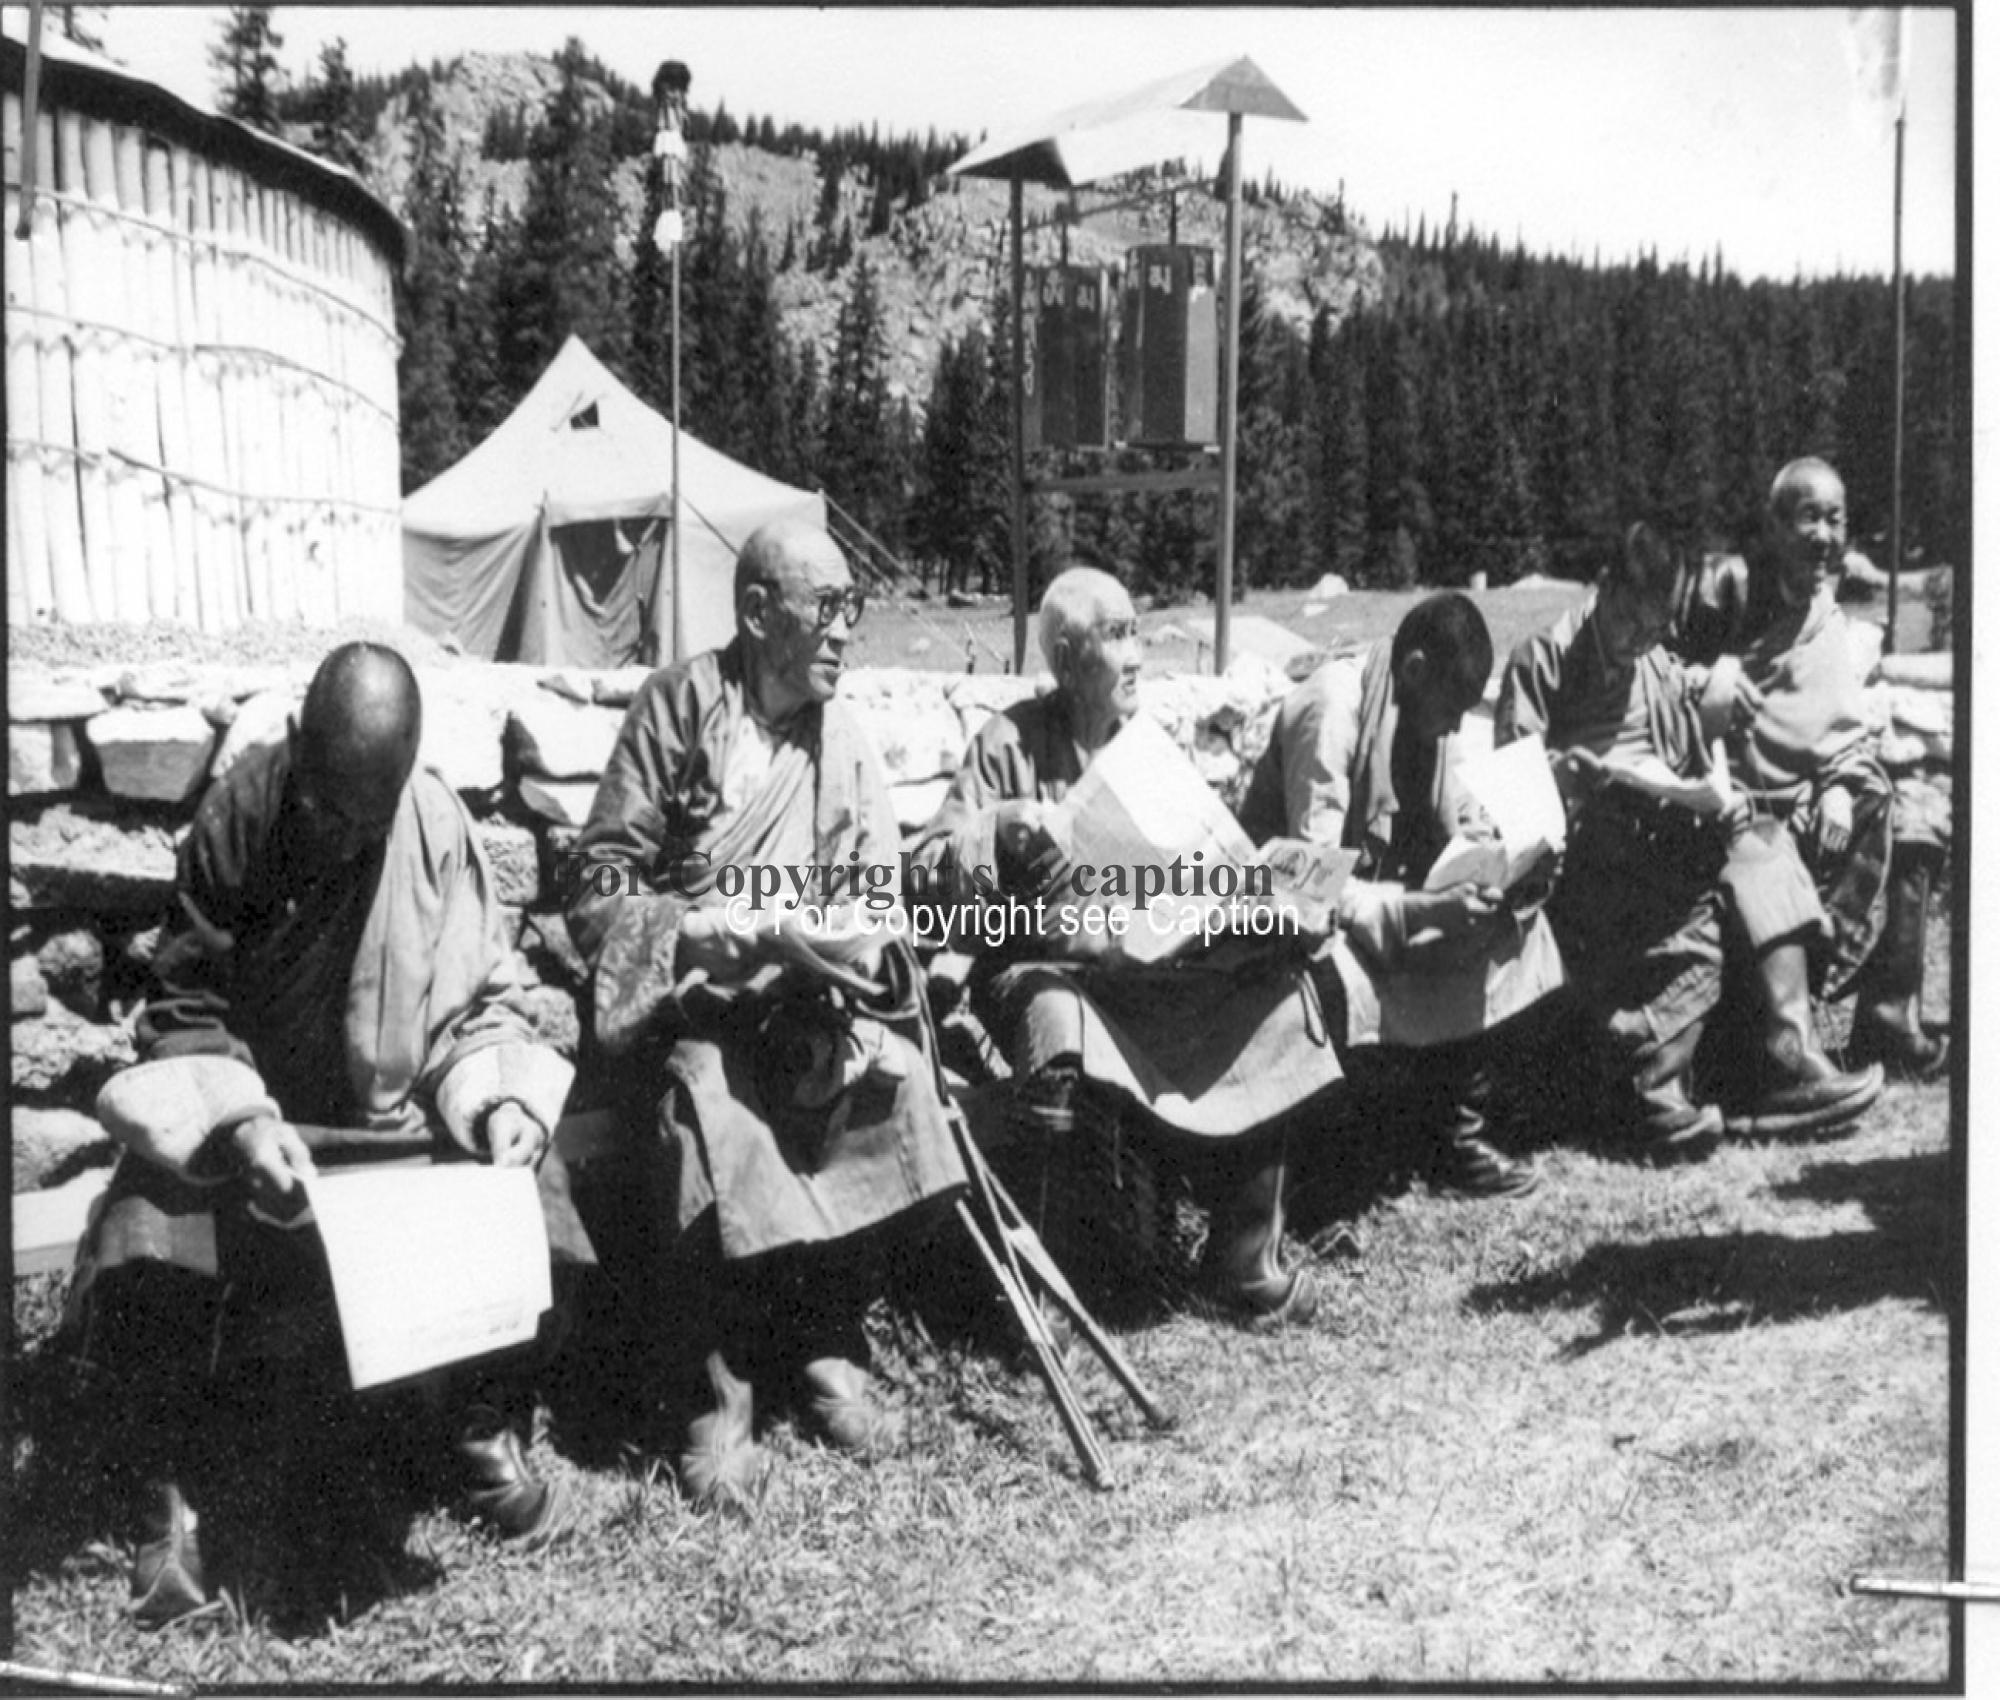 Reopening of a yurt temple in 1990. Film Archives K-44686